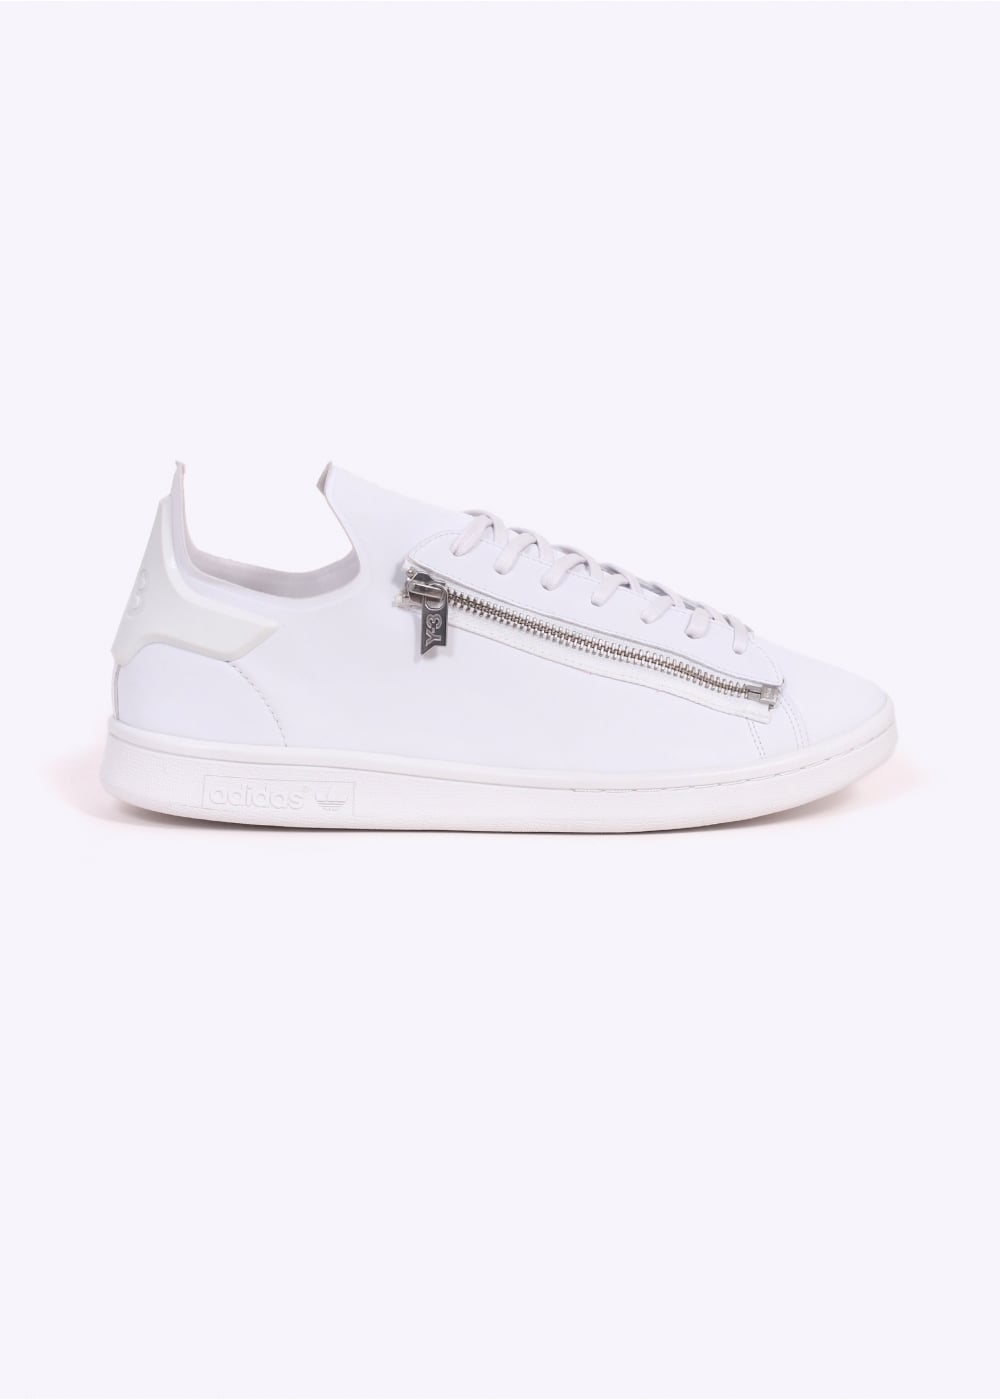 3cd149bd9 Y3   Adidas - Yohji Yamamoto Stan Smith Zip - White - Trainers from ...